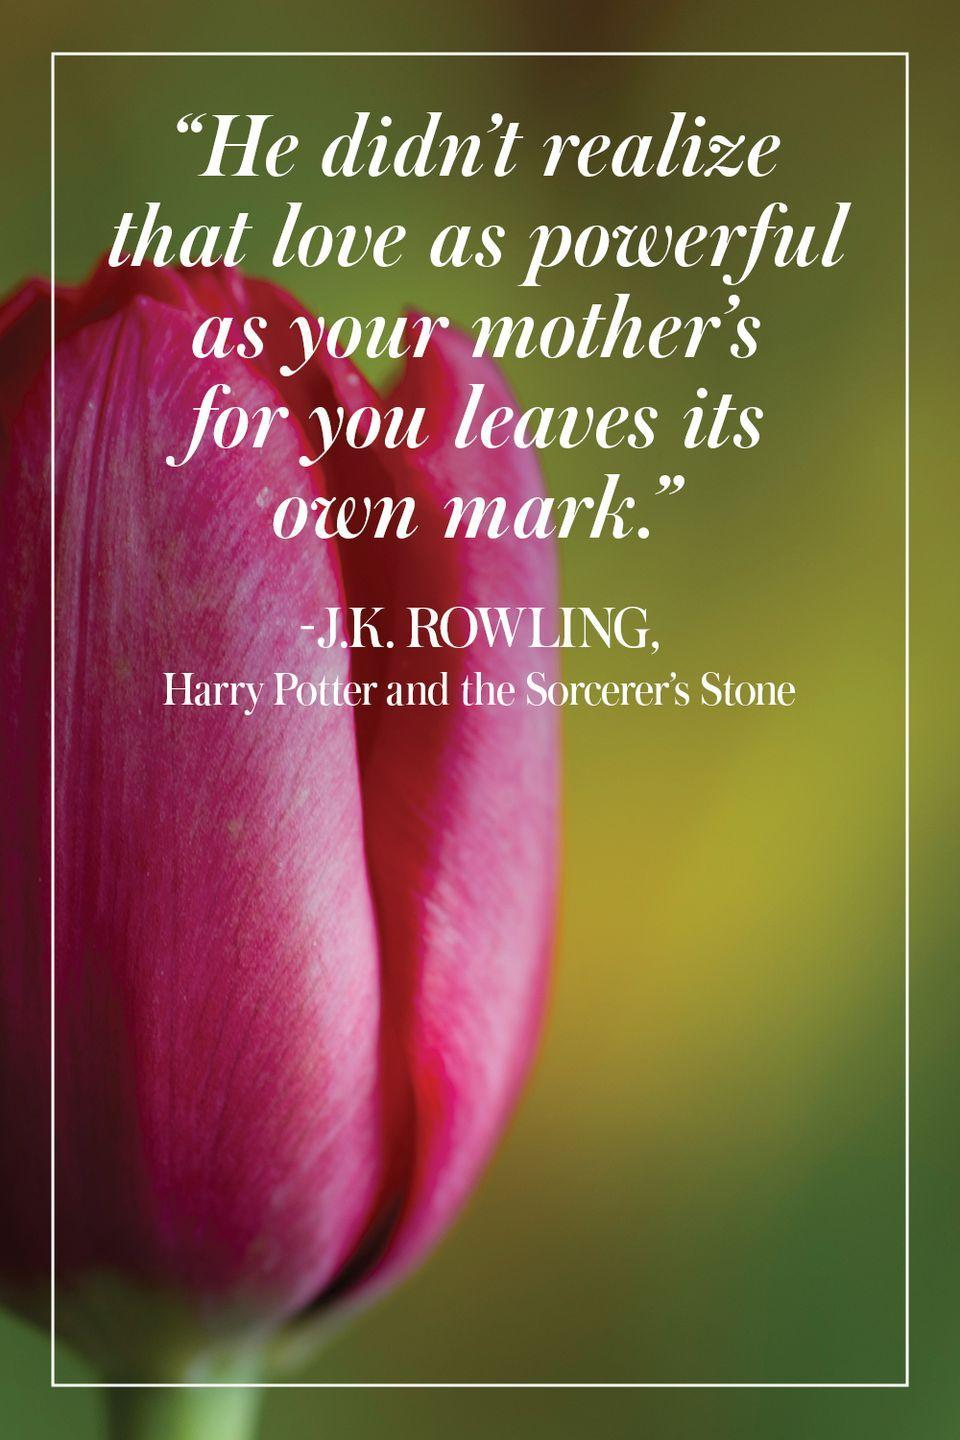 """<p>""""He didn't realize that love as powerful as your mother's for you leaves its own mark."""" </p><p>- J.K. Rowling, <em>Harry Potter and the Sorcerer's Stone</em></p>"""